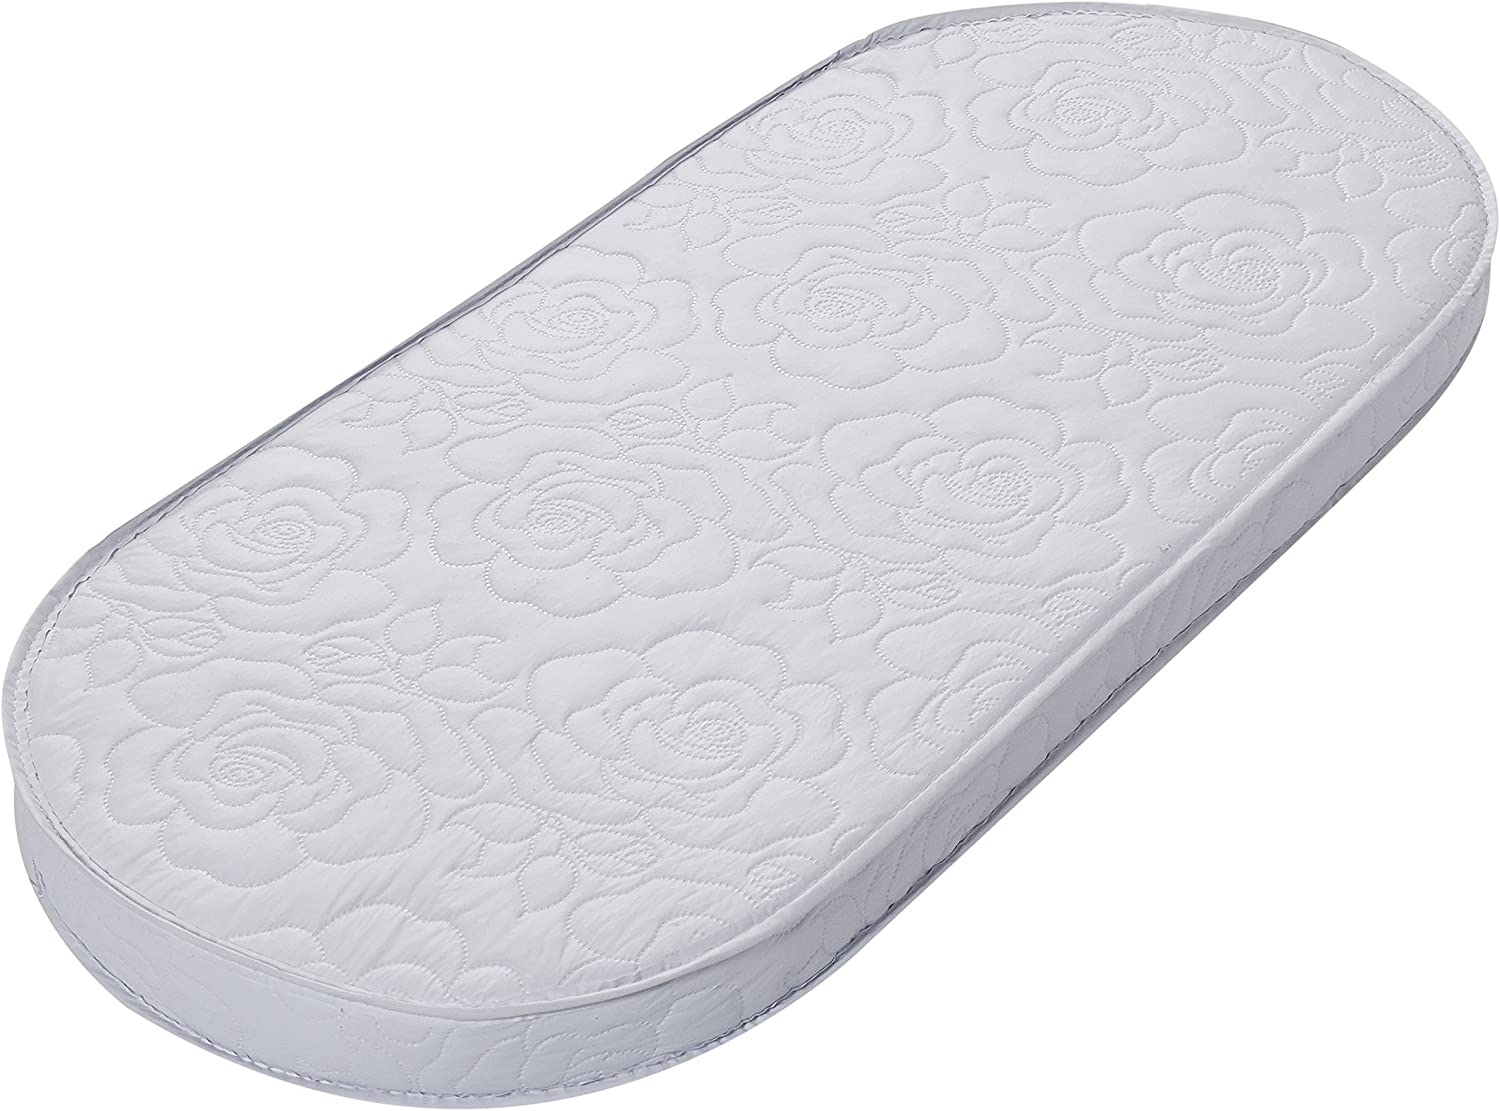 Also Fits Portable Bassinets 13 x 29 x 2 Inch Big Oshi Waterproof Oval Baby Bassinet Mattress Thick Breathable Foam Interior Soft Waterproof Exterior Comfy Padded Design